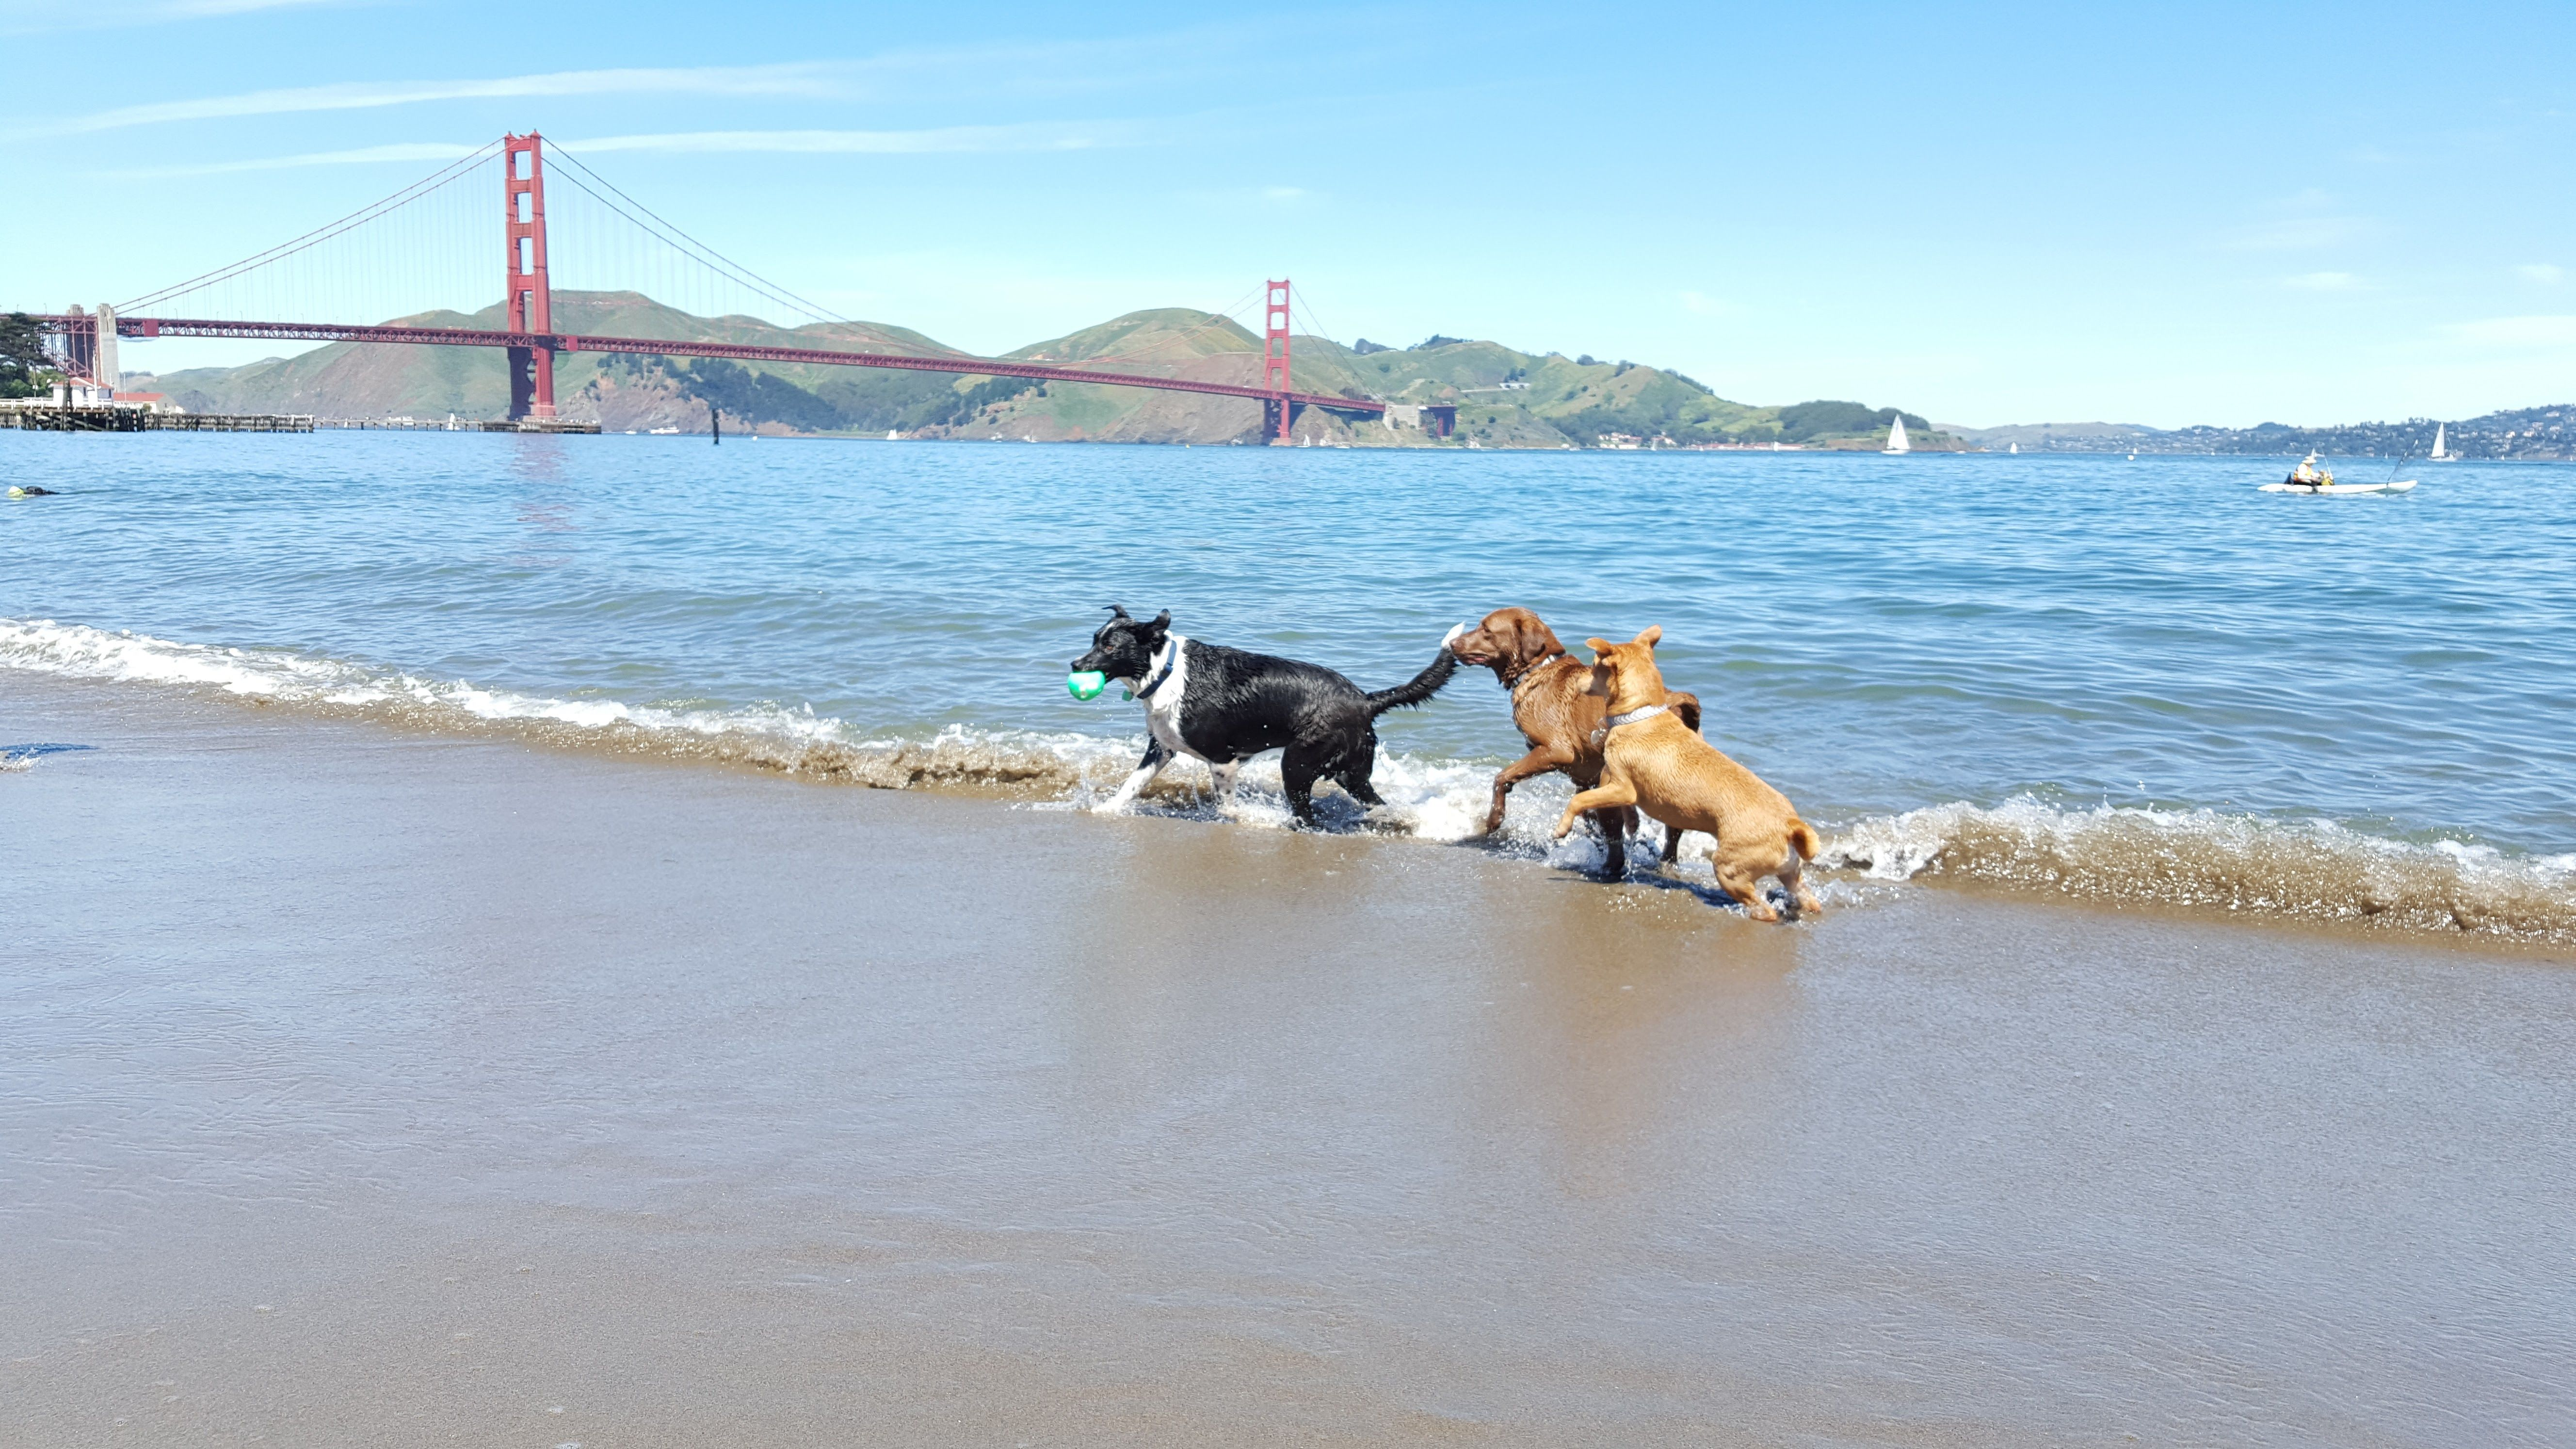 Dog-Friendly San Francisco: All the Best Parks, Restaurants